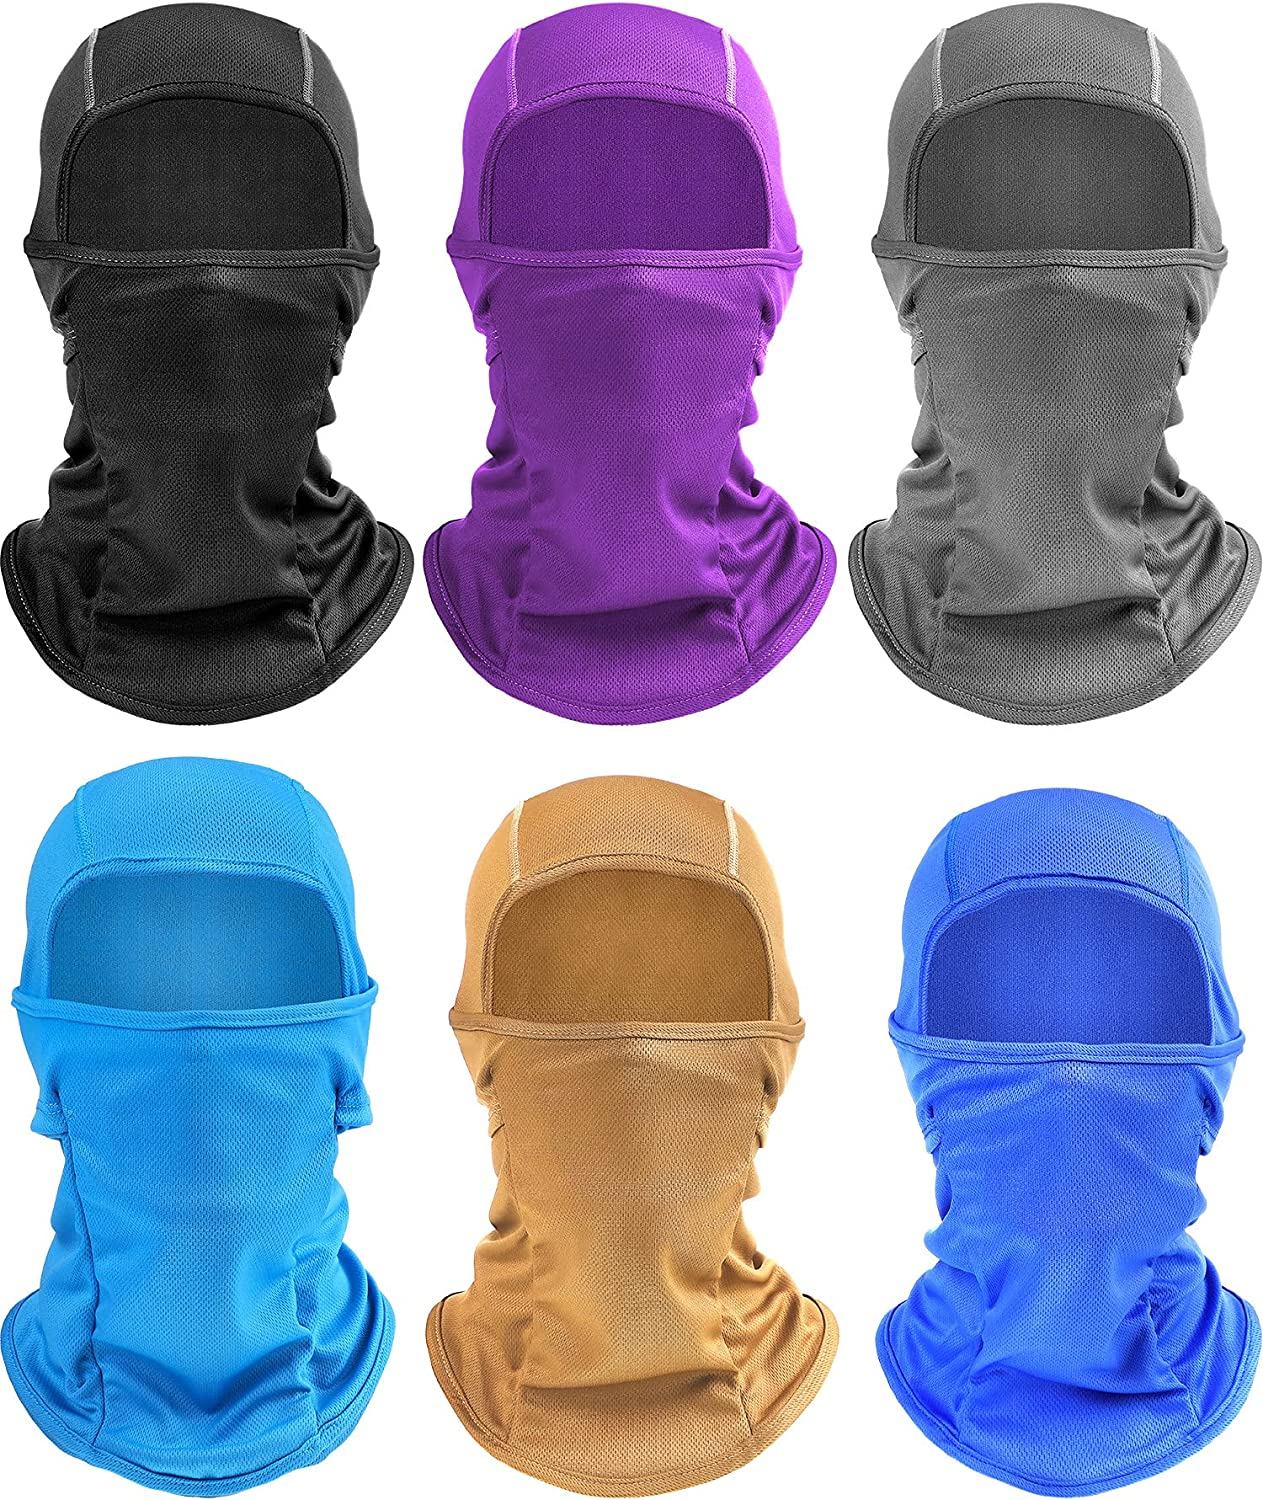 6 Pieces UV Sun Protection Balaclava Windproof Ski Full Face Covering Adjustable Cooling Head Cover for Men Women Outdoor Skiing Running Hiking Motorcycle Cycling